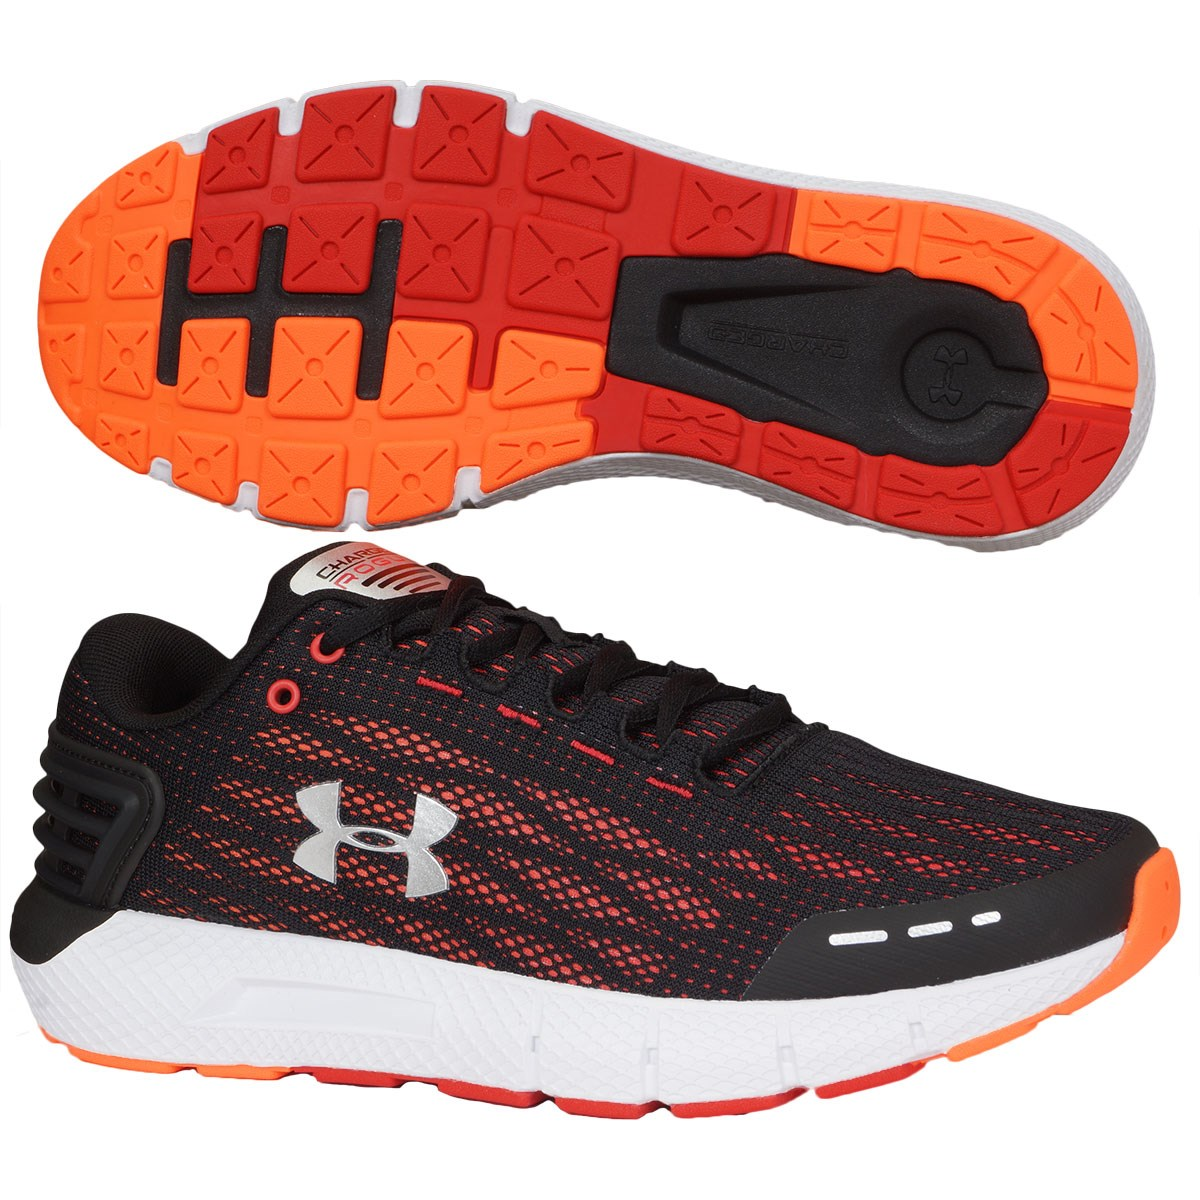 アンダーアーマー(UNDER ARMOUR) UA Charged Rogue シューズ